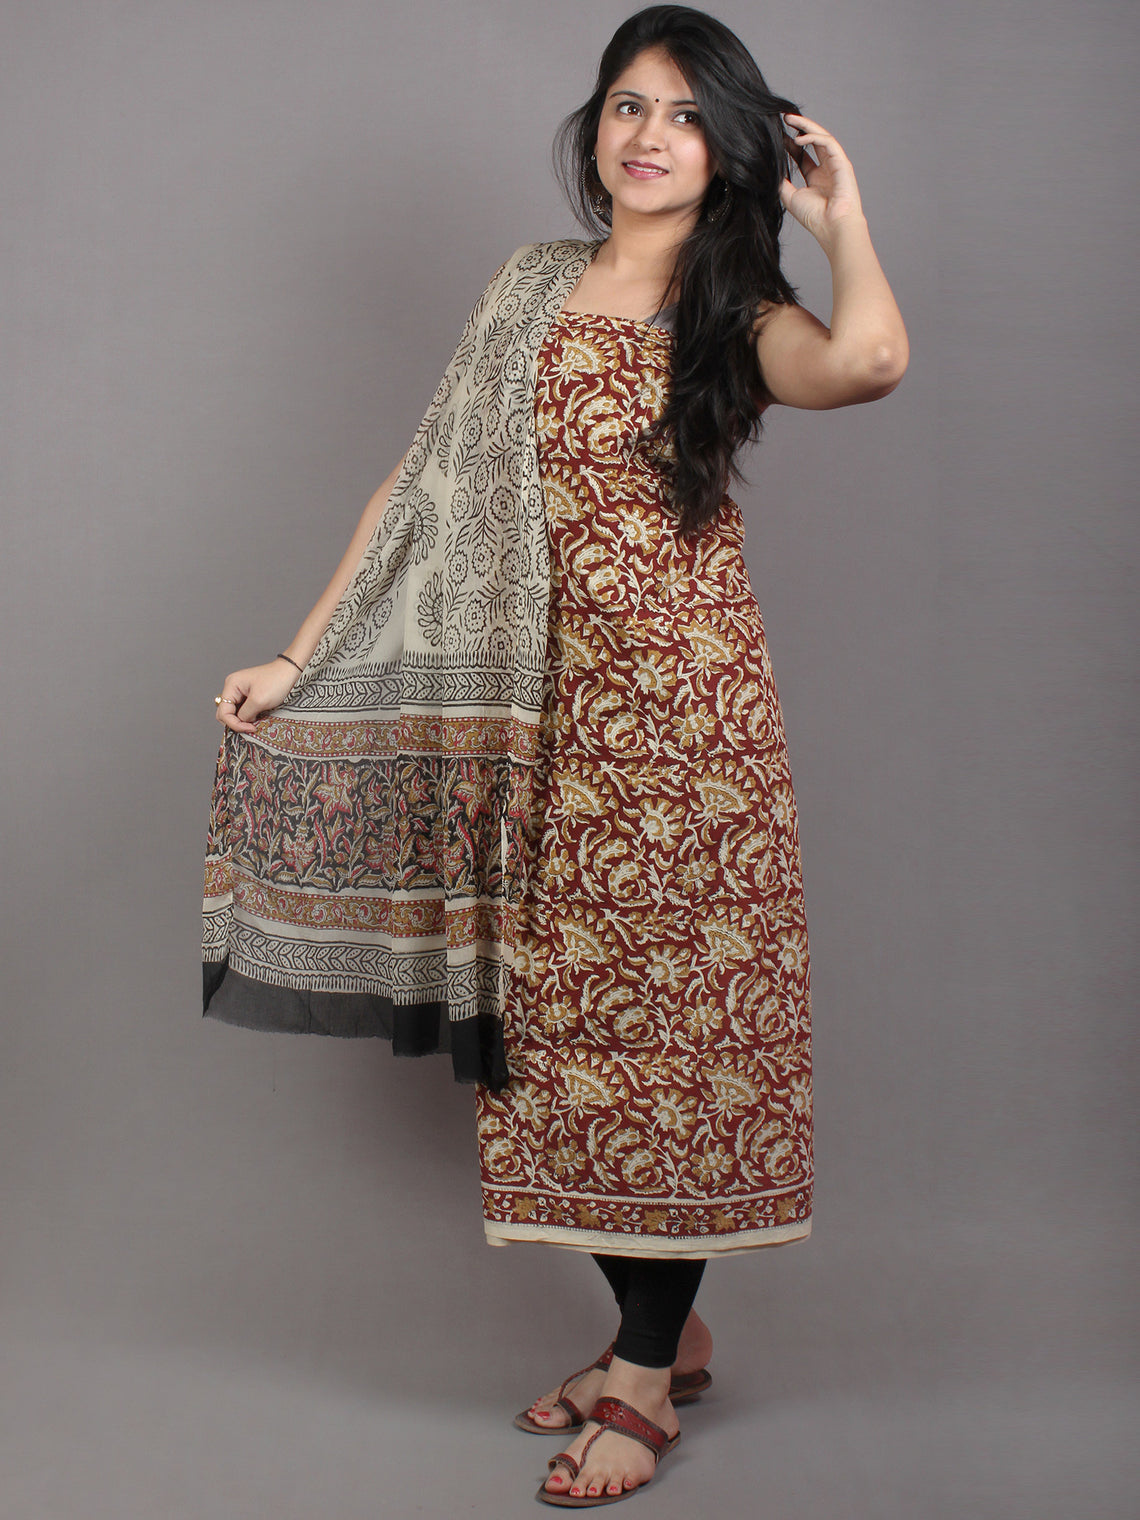 Maroon White Brown Hand Block Printed Cotton Suit-Salwar Fabric With Chiffon Dupatta - S1628054